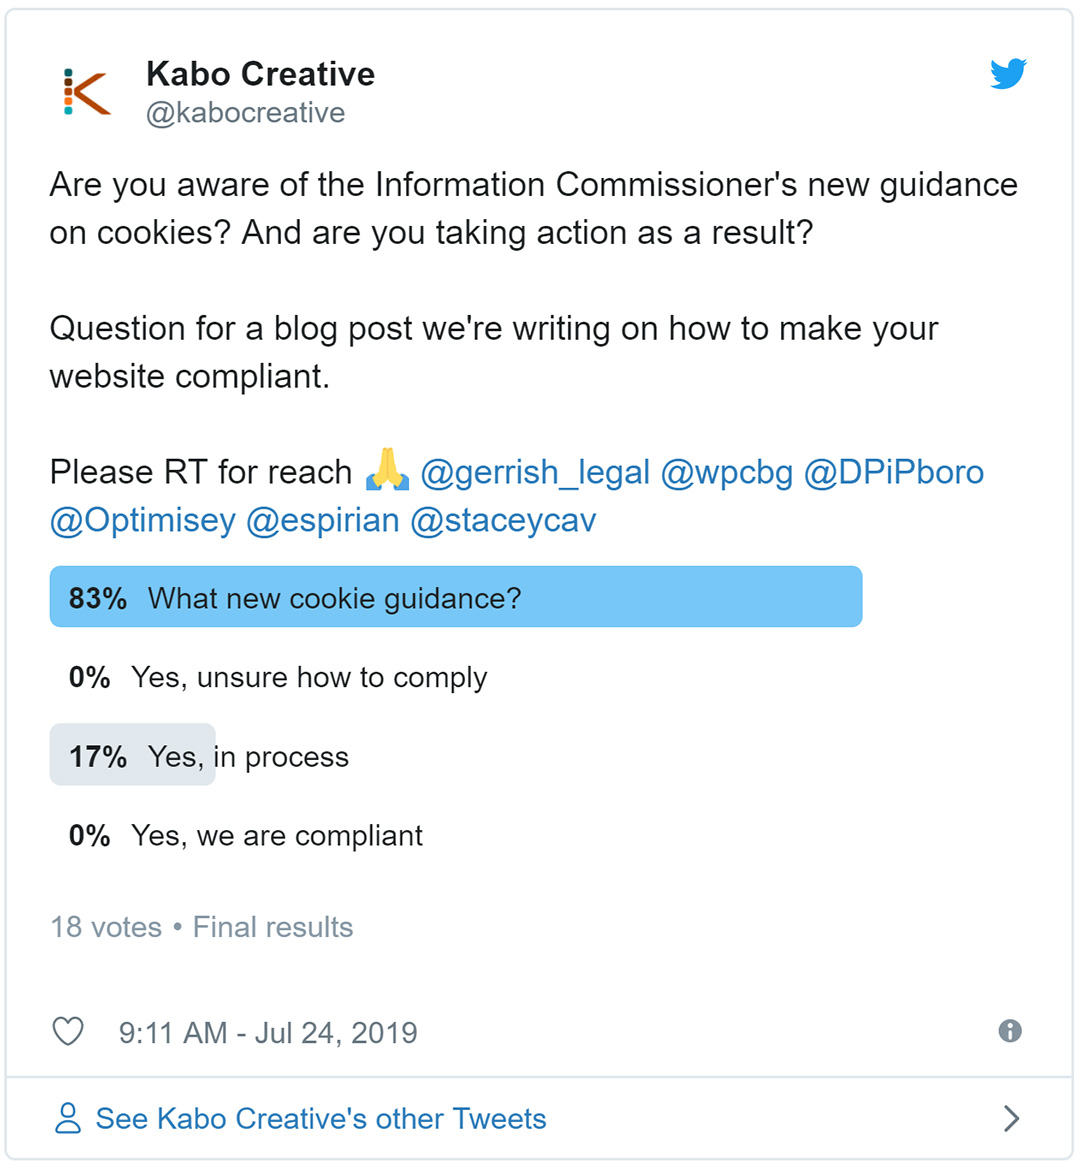 A screenshot of a twitter poll asking respondents if they have heard, and if they have taken action, on the new cookie guidance from the ICO